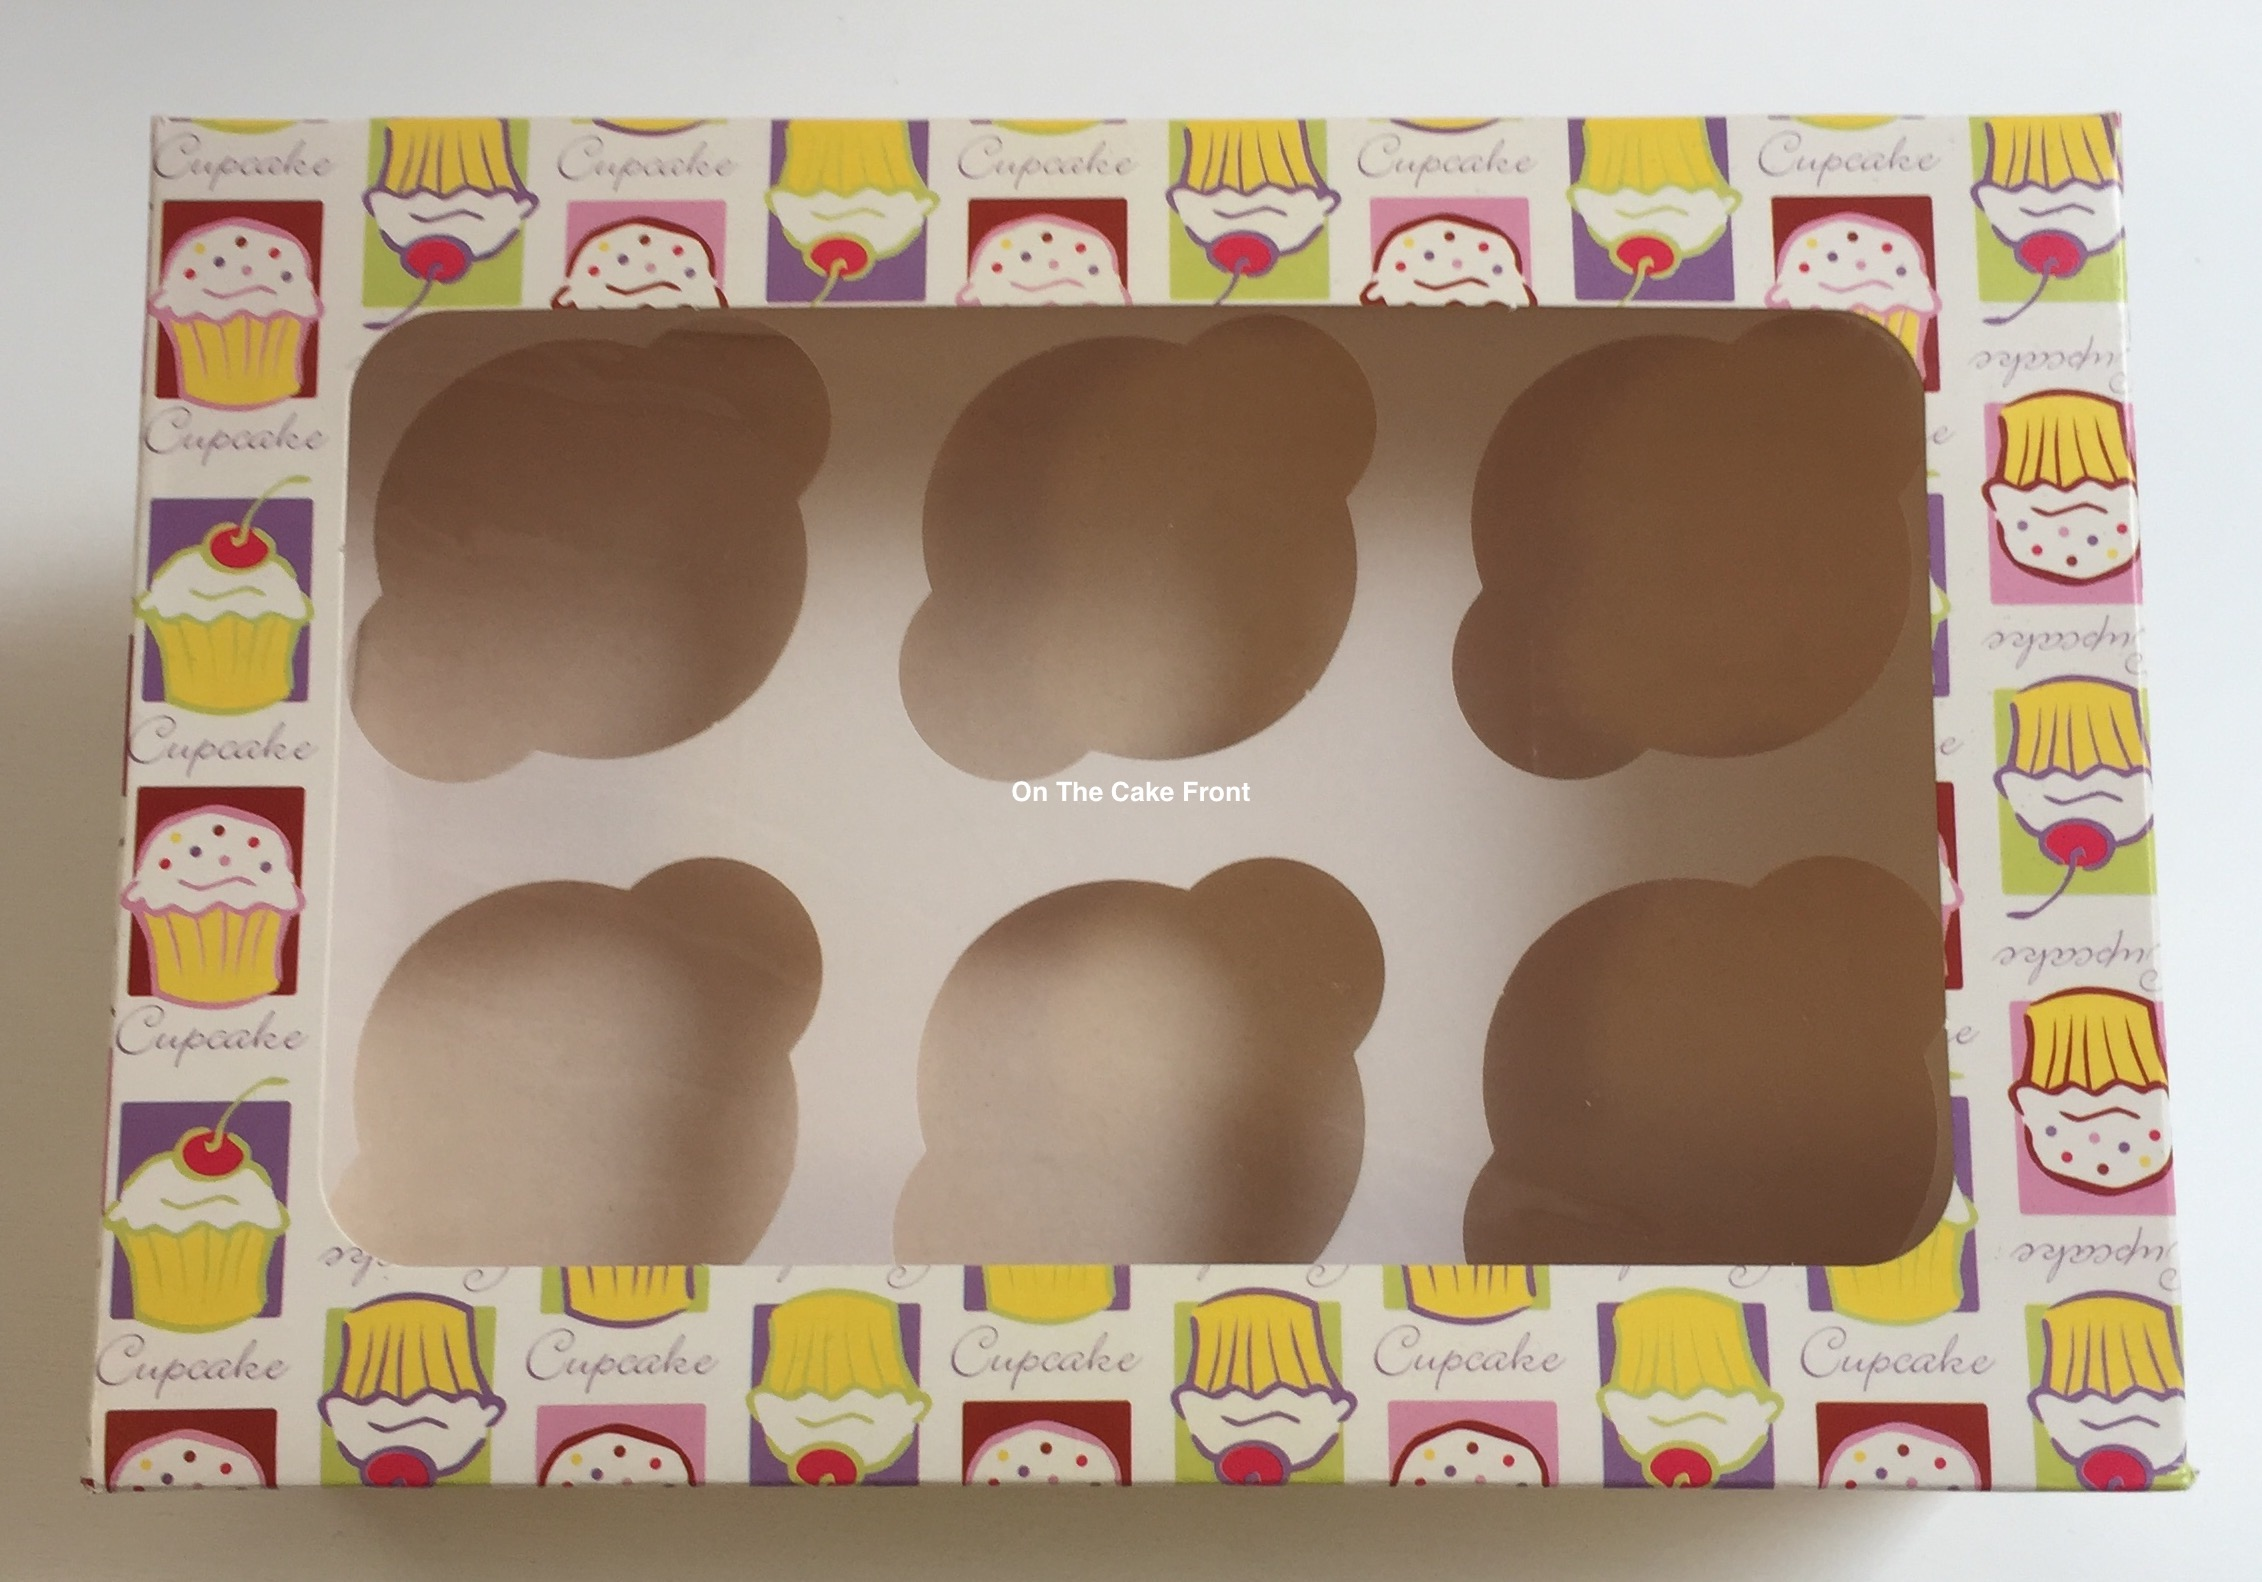 Cupcake boxes pattern gift boxes holds 6 cup cakes + inserts